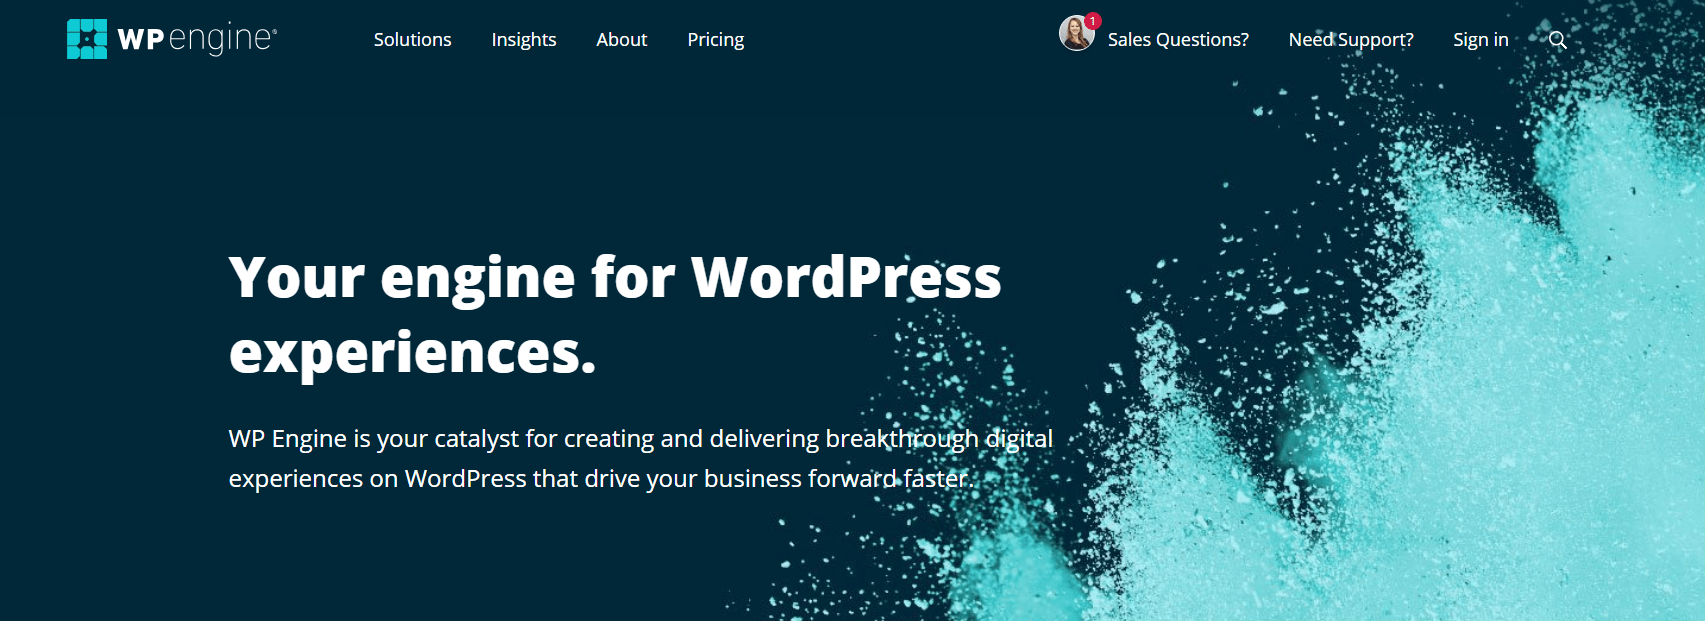 Sale Best Buy  WordPress Hosting WP Engine